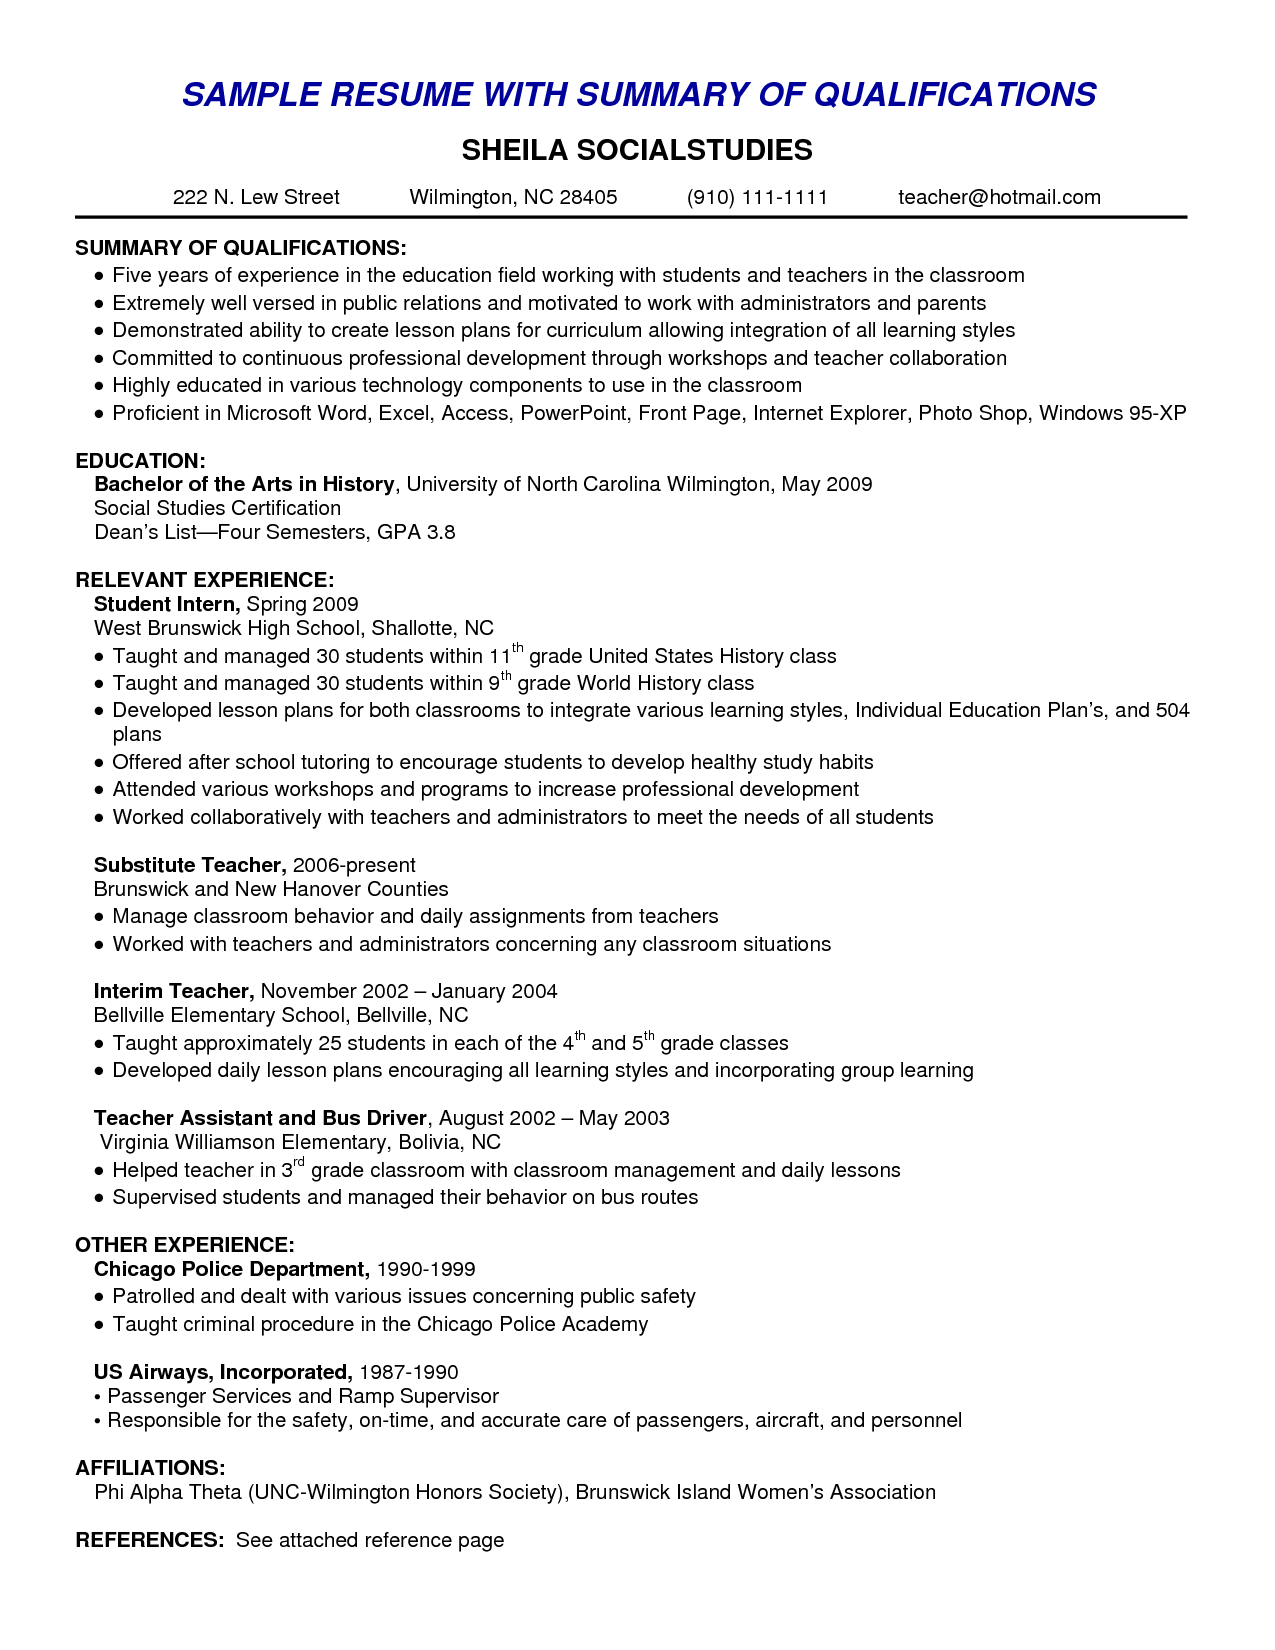 Examples Of Professional Resumes And Cover Letters 9 Professional Summary Examples Samplebusinessresume